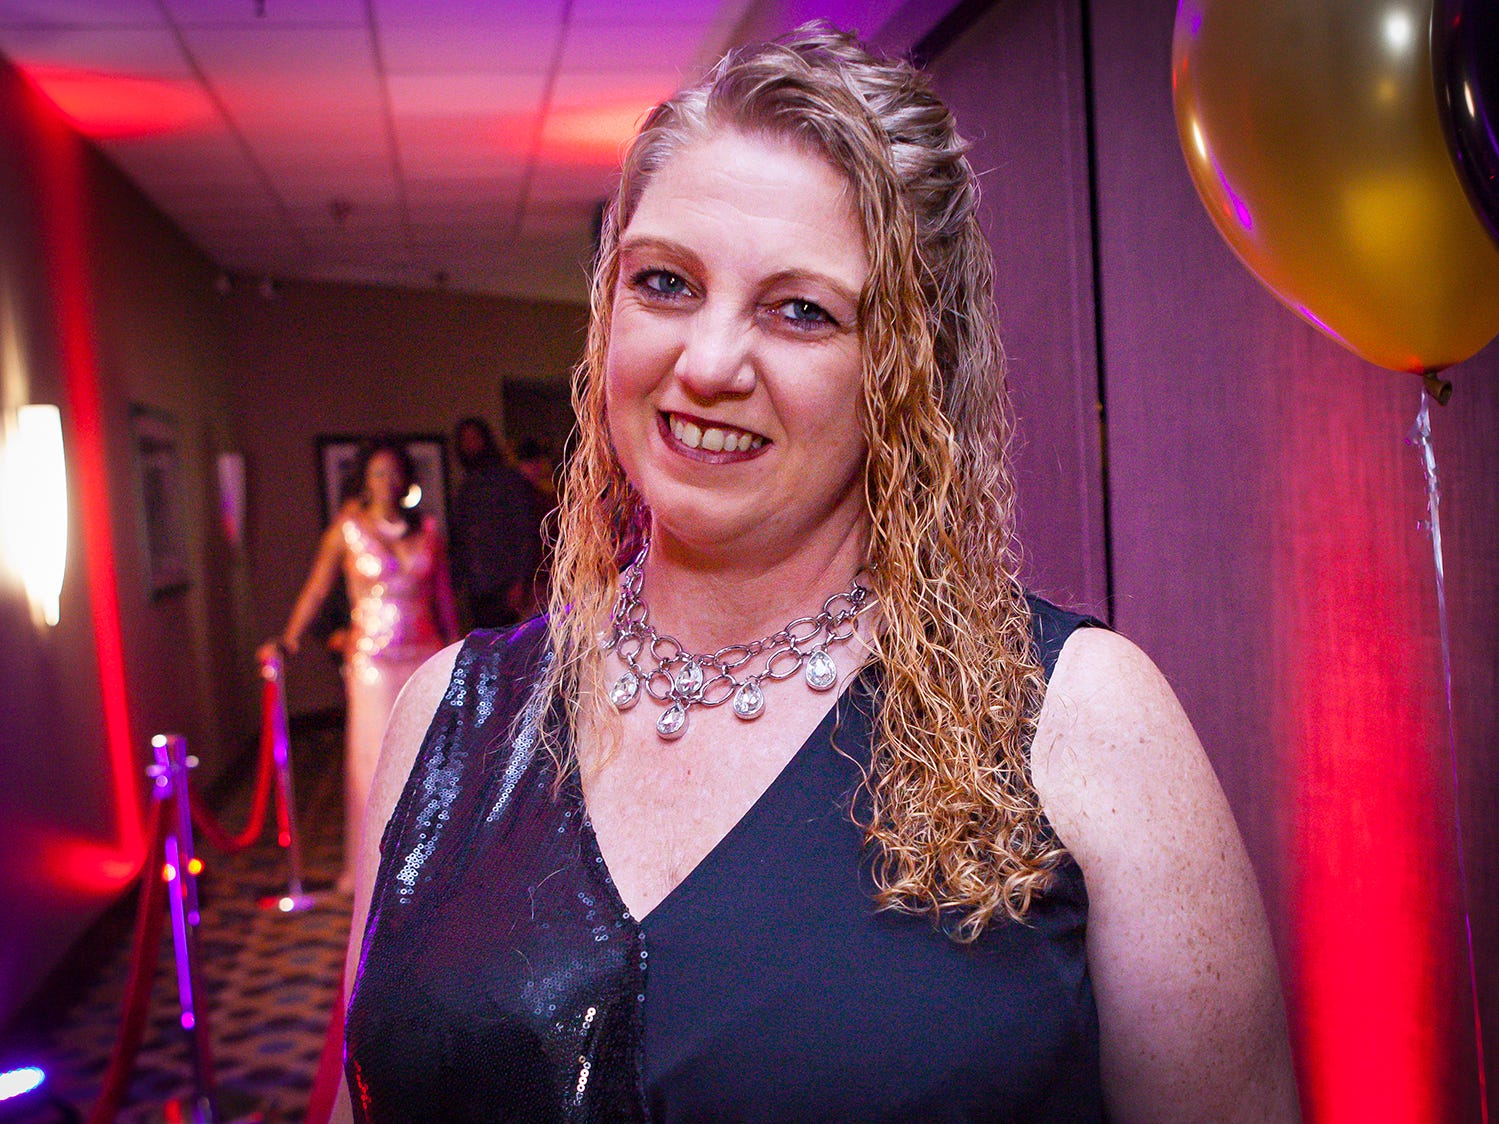 Angela Hays at the Pyramid Foundation's Shimmer and Shine New Year's Eve party, held at DoubleTree Hotel in Murfreesboro.